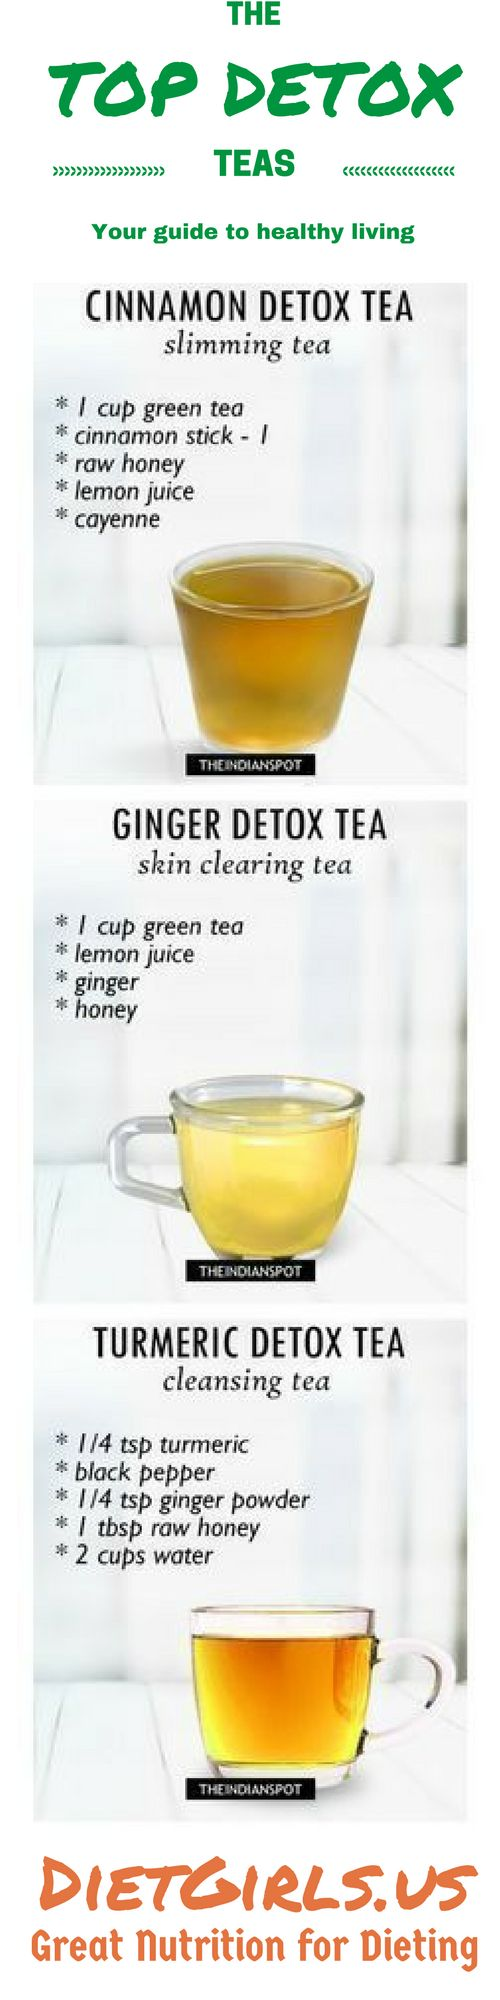 Teas are amazing drinks and vital for natural weight loss by detoxing. Teas are capable of providing several different benefits while you follow your detox regimen. They can cleanse your